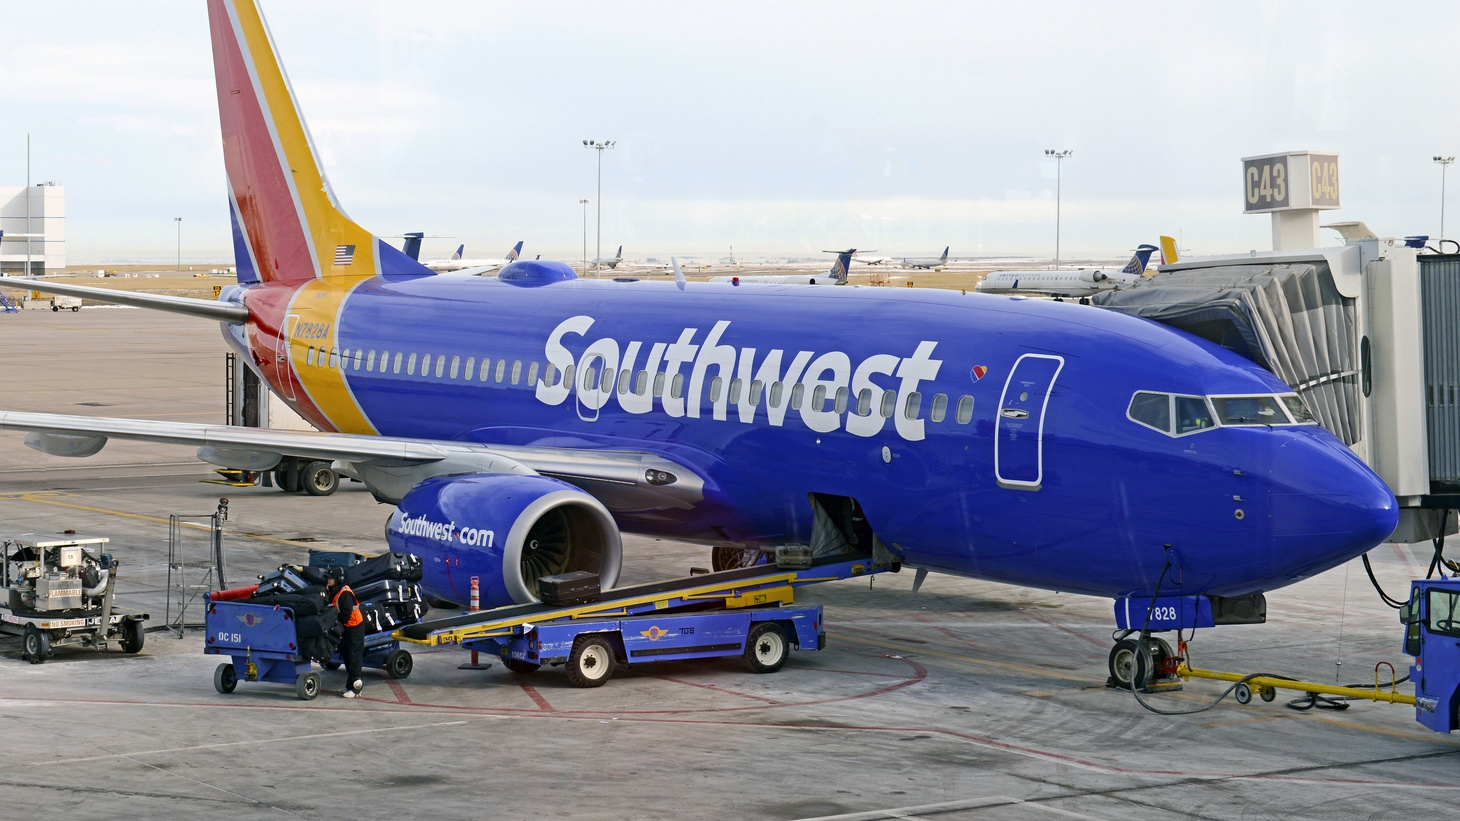 Southwest says its mass flight cancellations were due to bad weather in Florida and the slowing down of traffic by the Federal Aviation Administration, according to Leslie Josephs, airline industry reporter for CNBC.